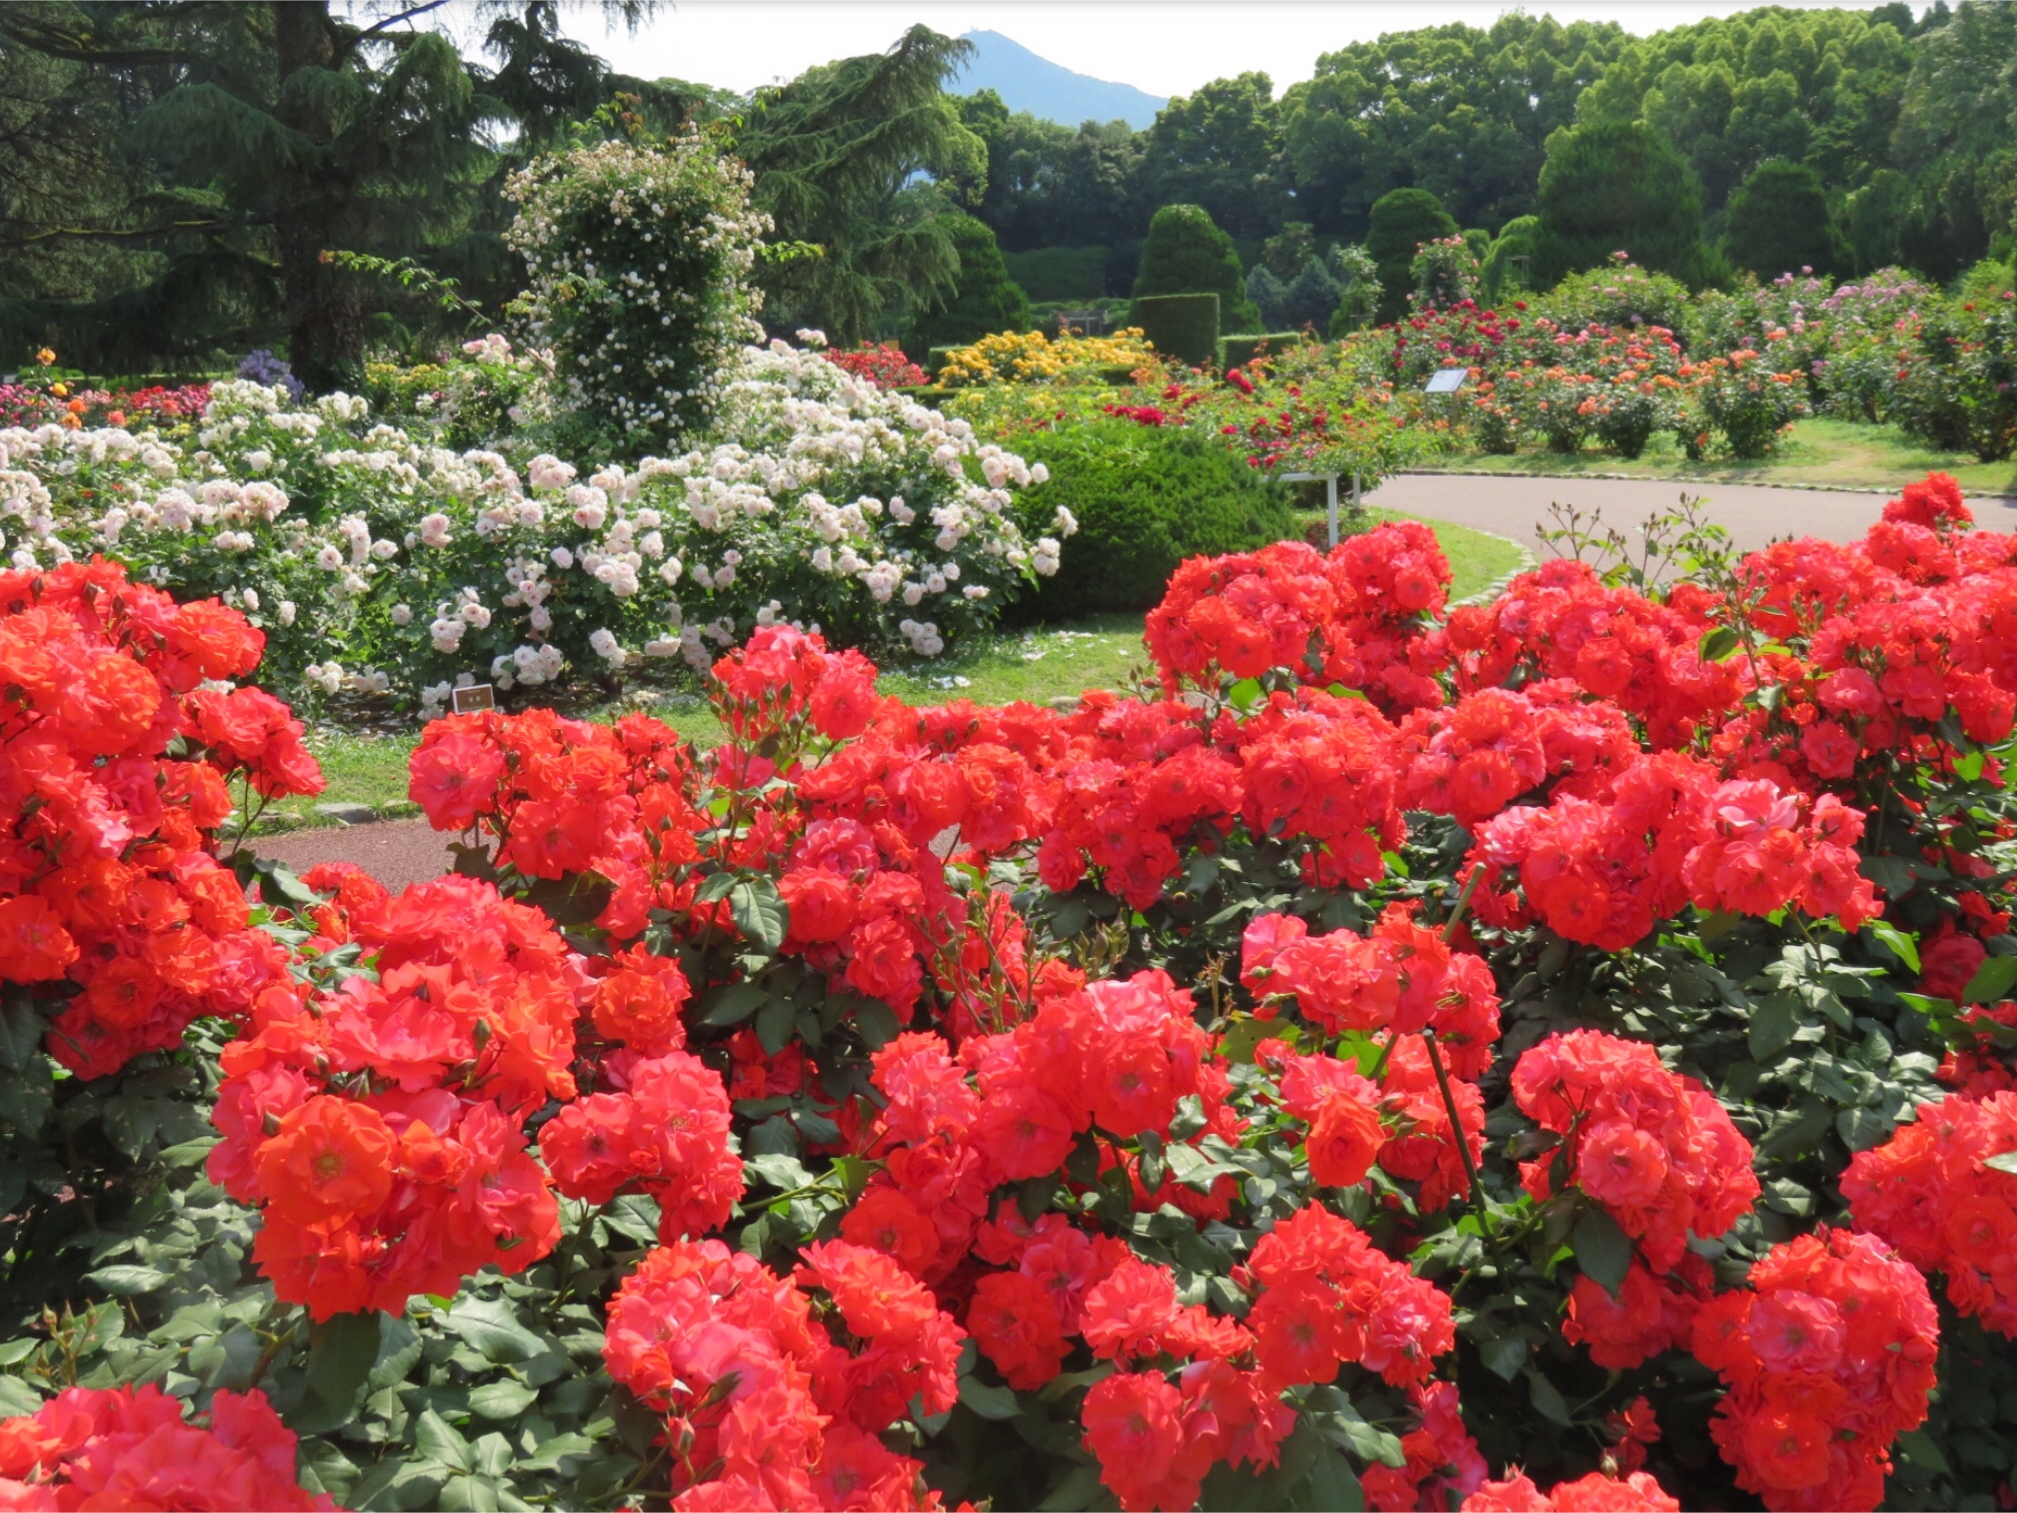 "Enjoying the colors of the seasons with vibrant and lively plants ""Kyoto Botanical Gardens"""